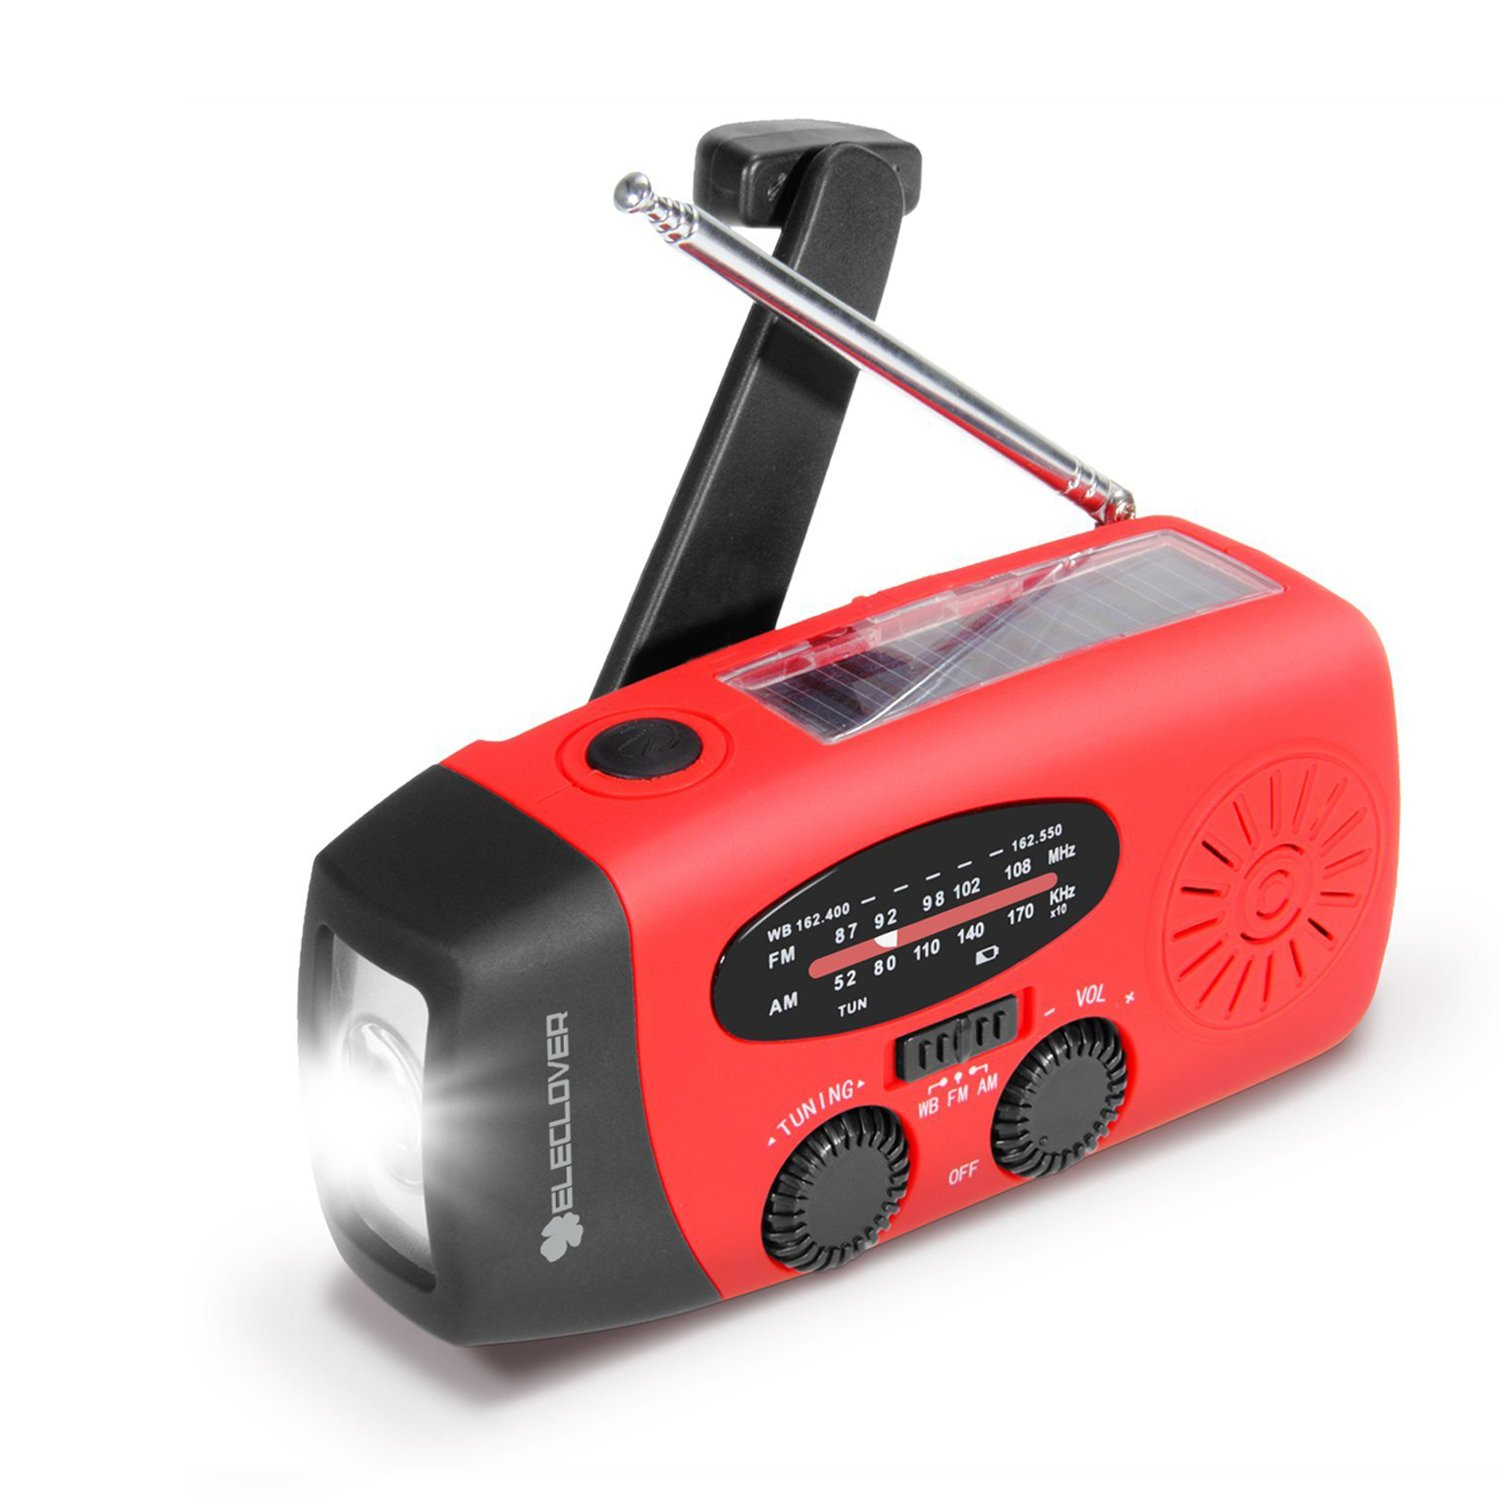 [Upgraded Version] ELECLOVER Portable Dynamo Emergency Solar Crank AM/FM/NOAA(WB) Weather Radio with LED Flashlight, Cell Phone Portable Charger, Black cr001bk